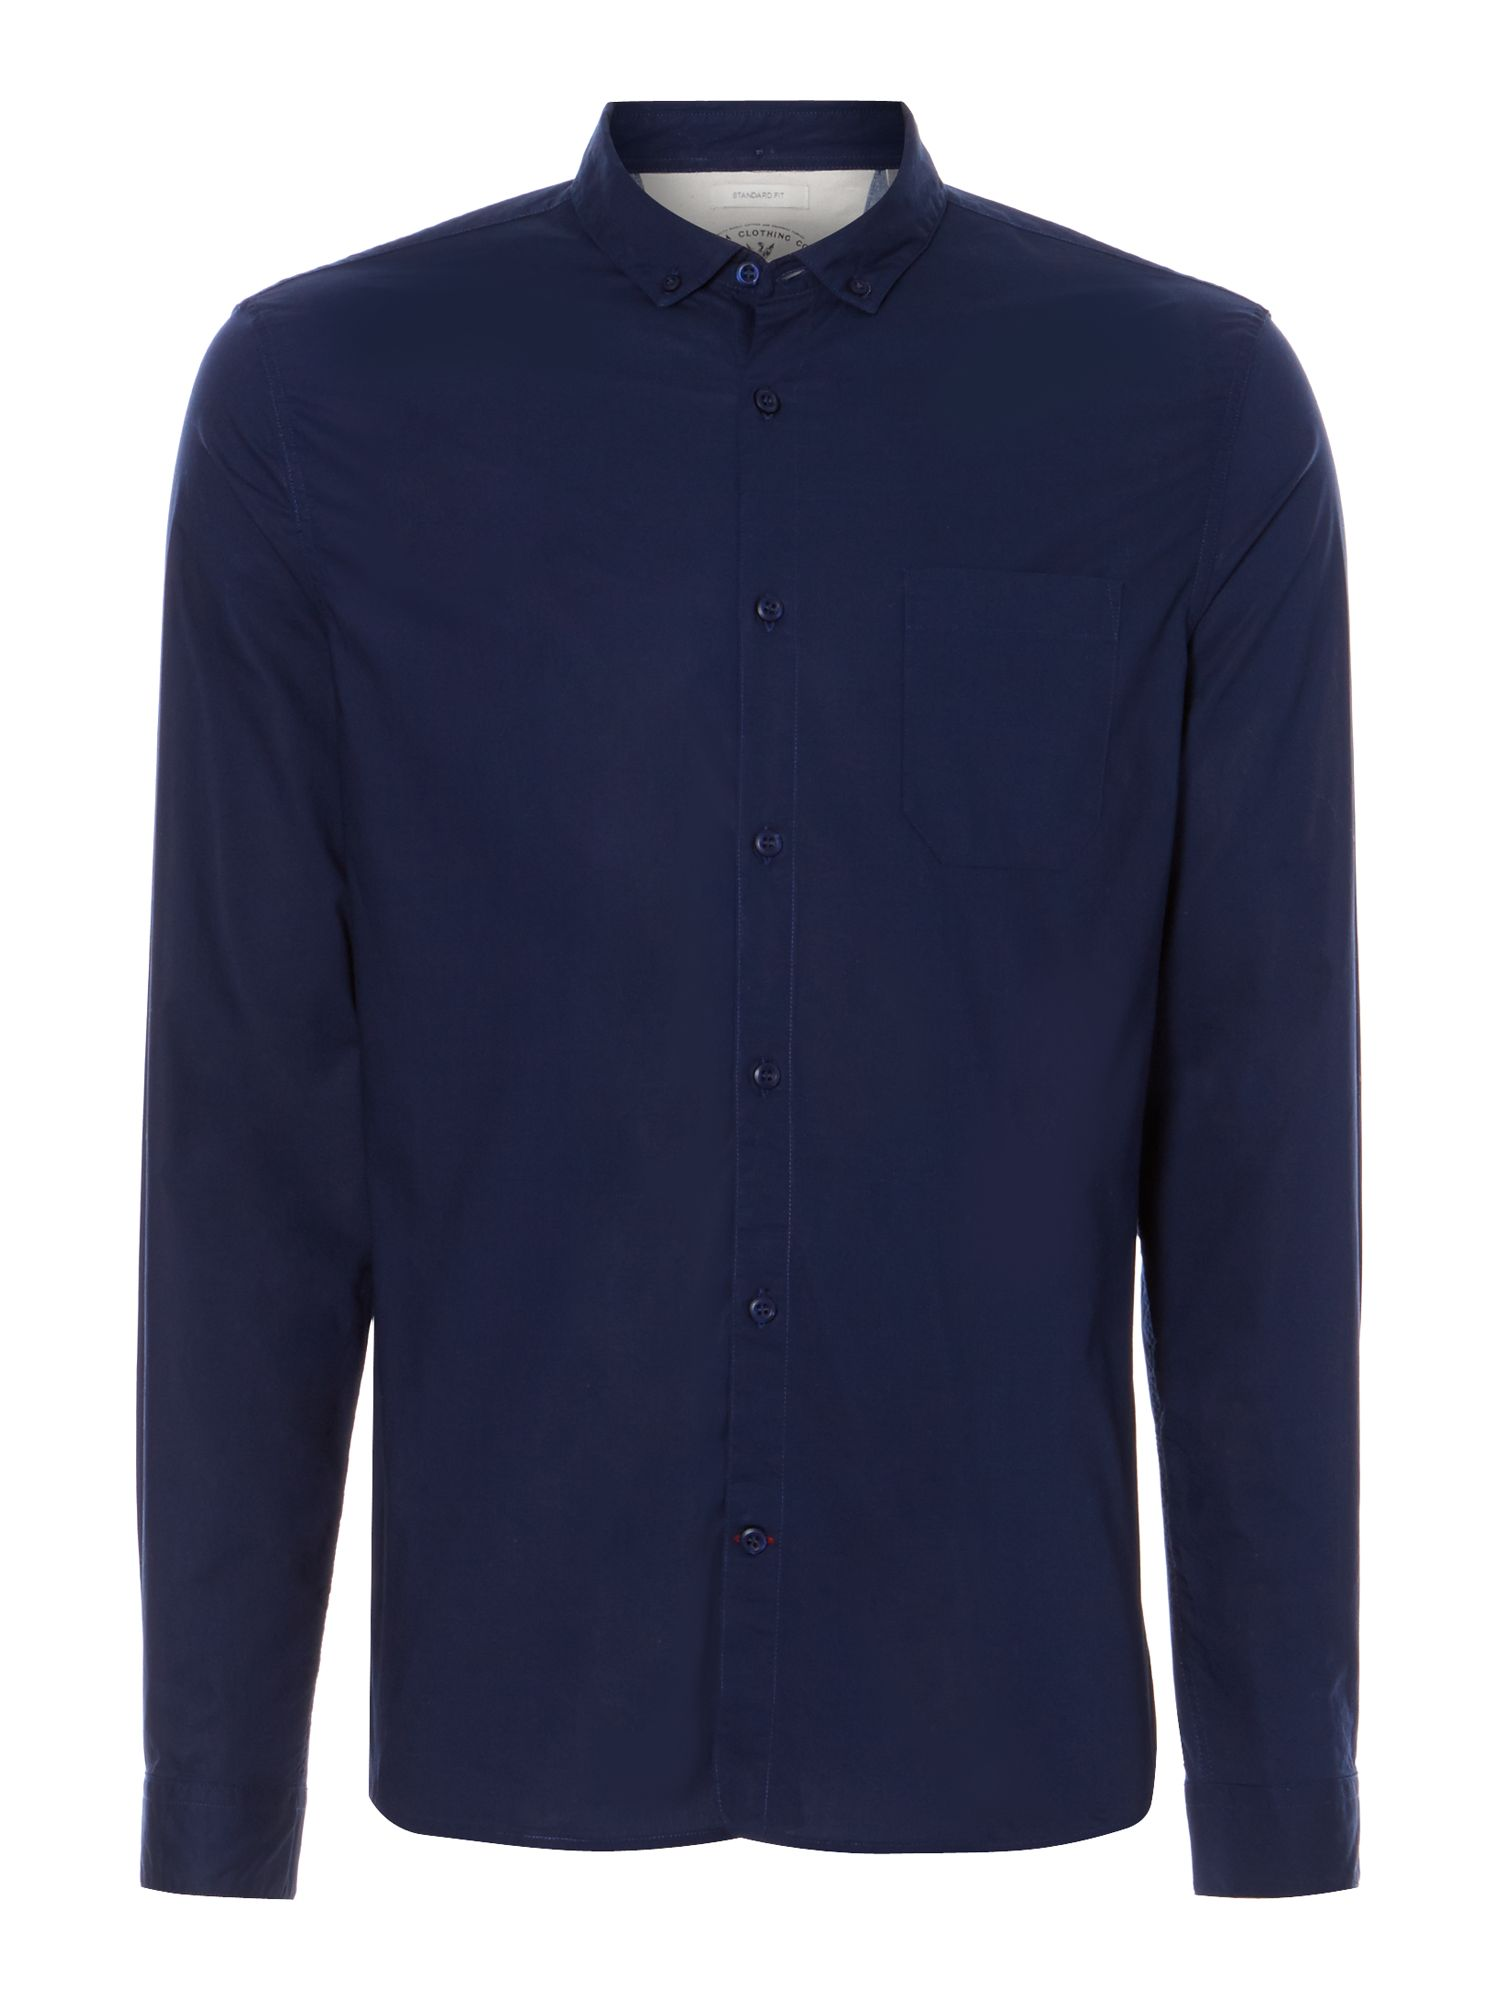 henry plain cotton long sleeved shirt